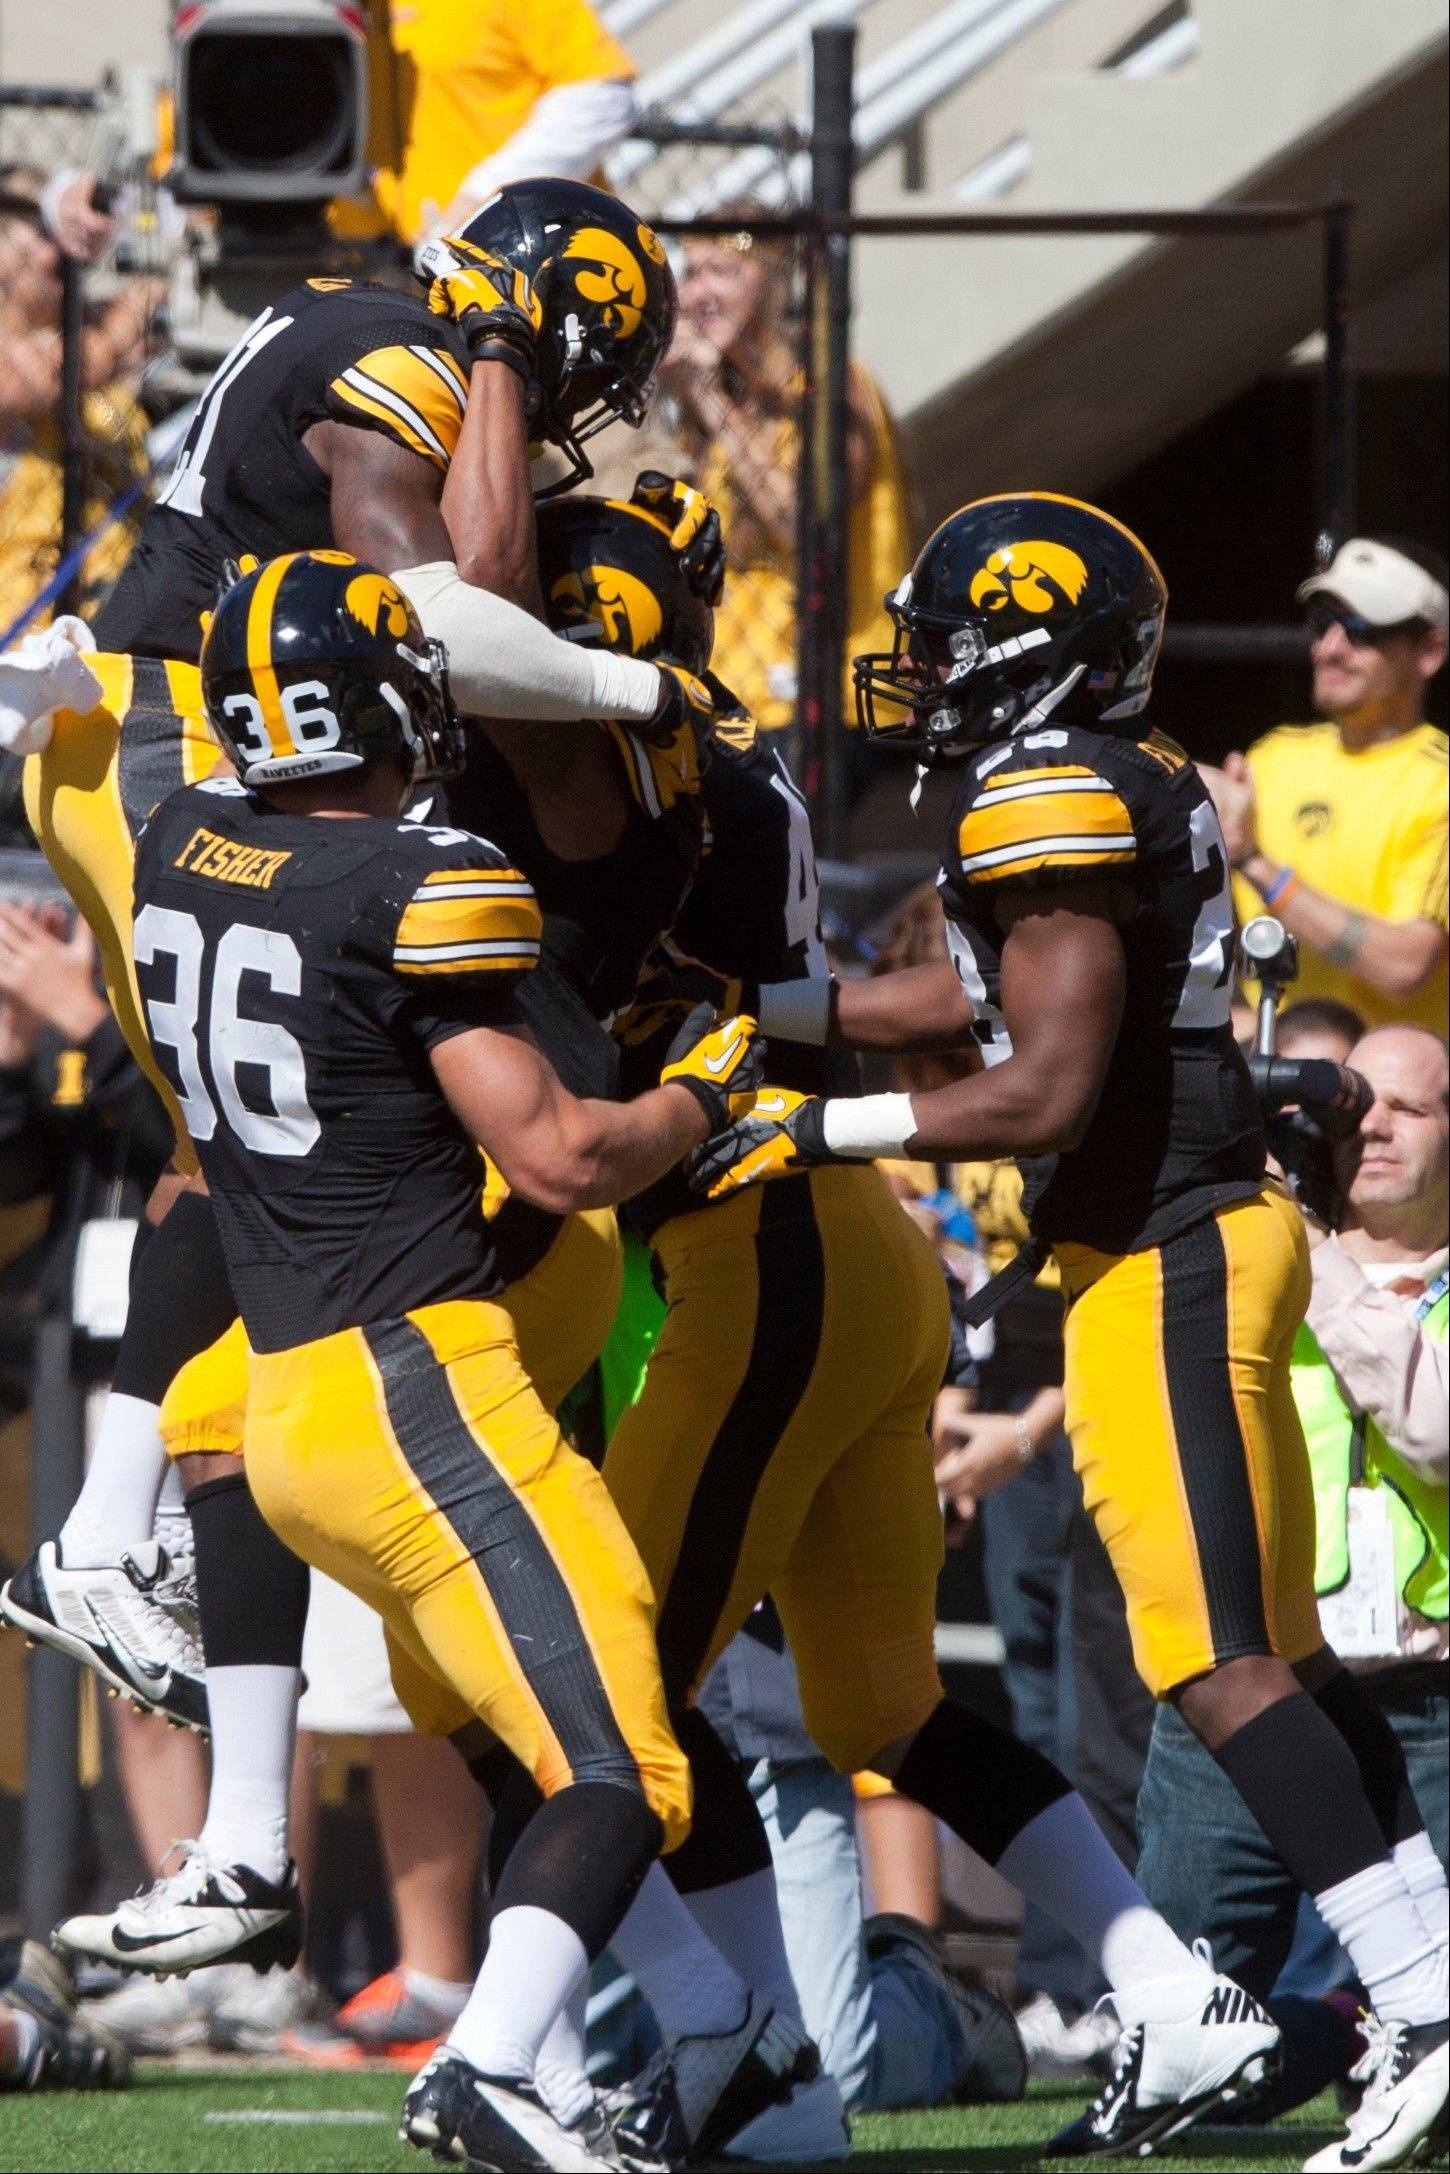 Iowa wide receiver Kevonte Martin-Manley, top left, celebrates with teammates after scoring a touchdown against Western Michigan on Saturday in Iowa City.